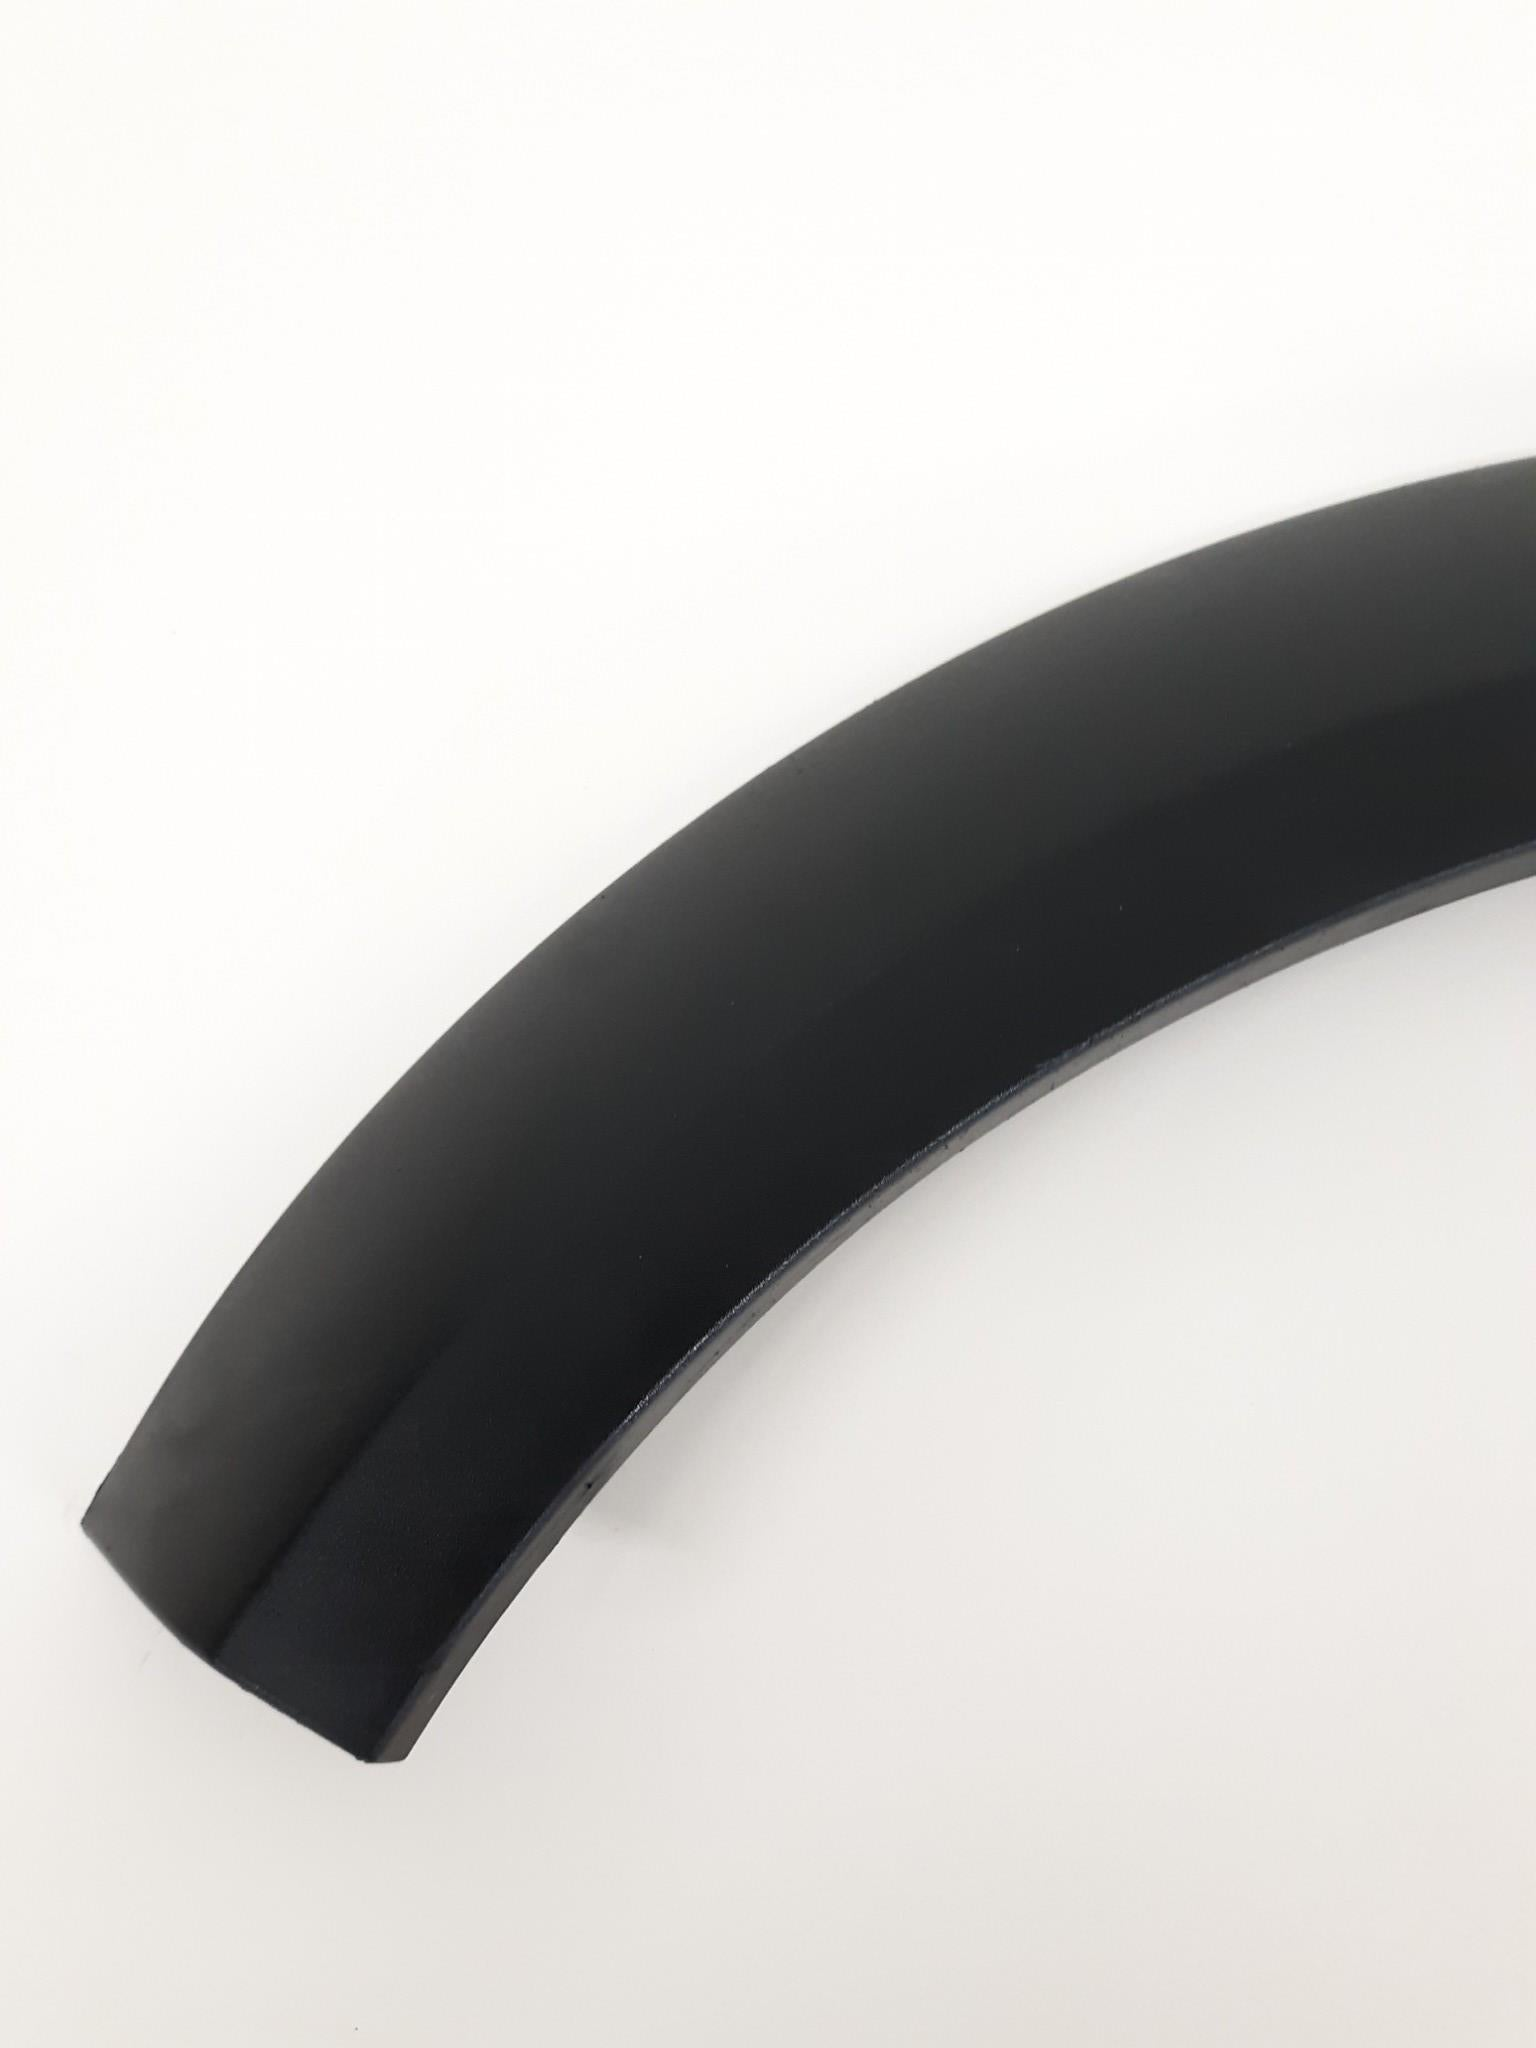 2002 - 2008 MINI COOPER R50 R52 R53 RIGHT REAR WHEEL ARCH COVER 1505868 OEM - Click Receive Auto Parts